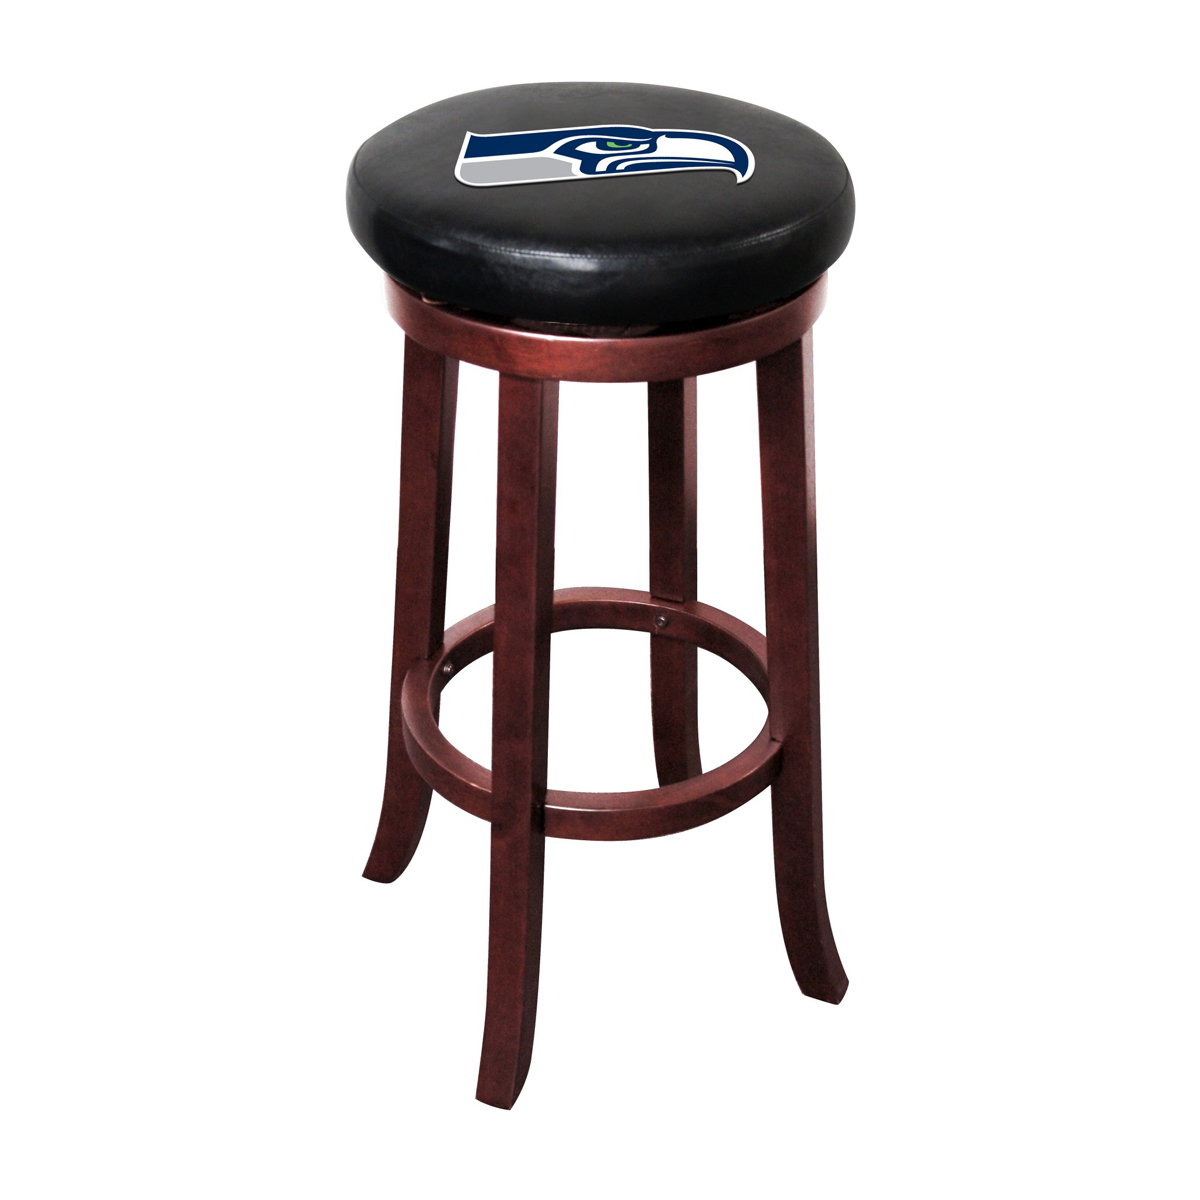 SEATTLE SEAHAWKS WOOD BAR STOOL